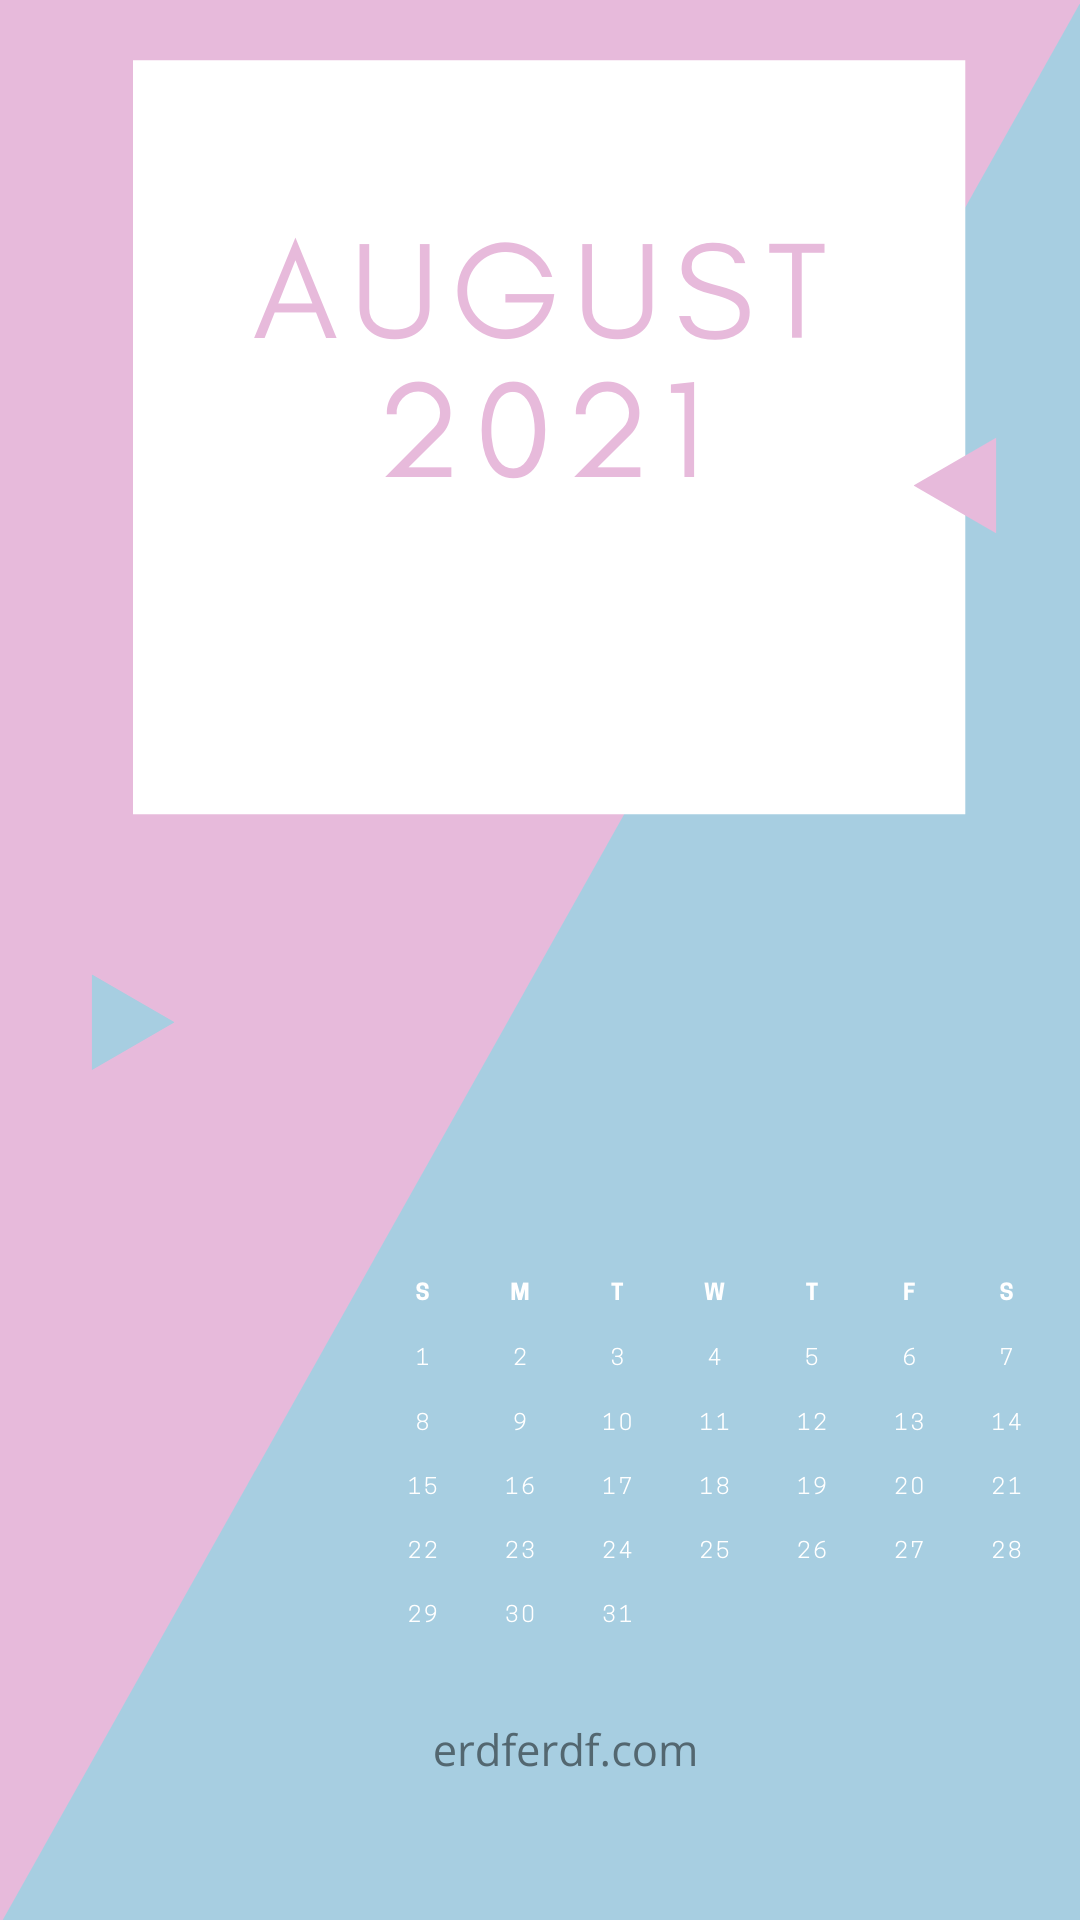 August 2021 Callendar Wallpaper Iphone Purple Free